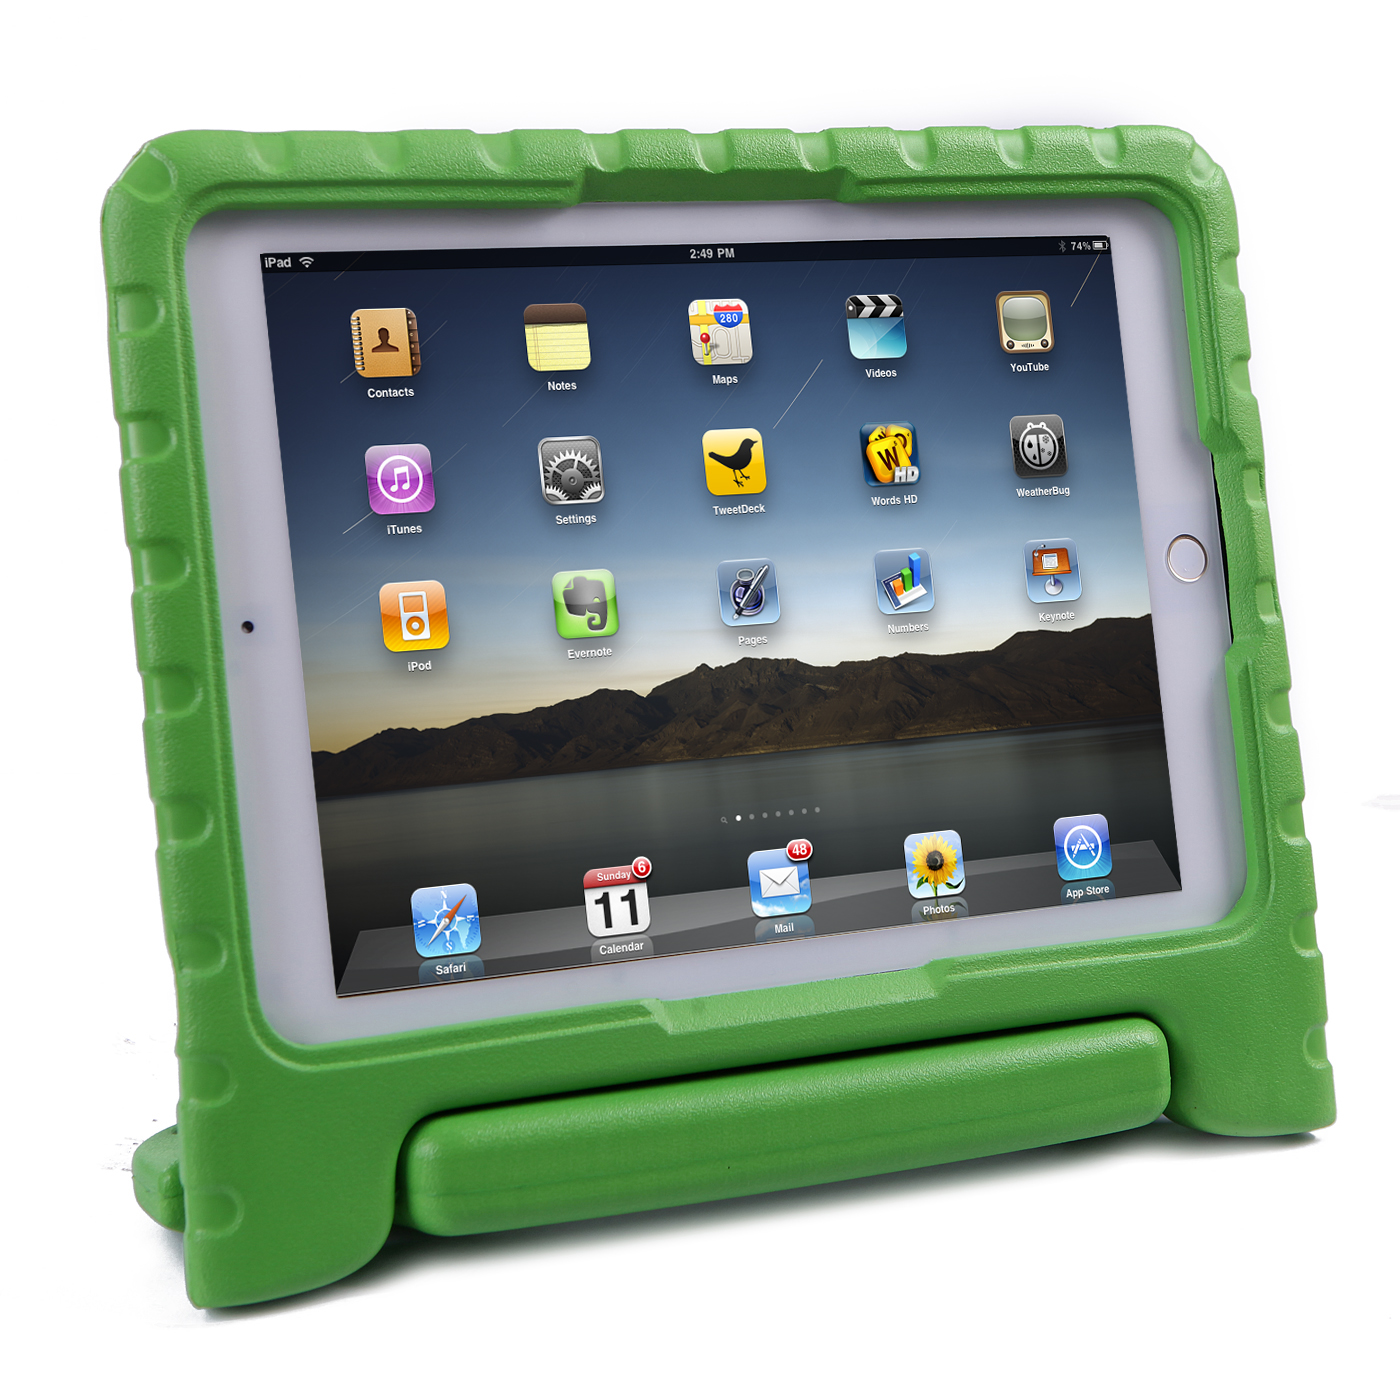 iPad Pro 9.7 Case for Kids - HDE Shockproof Cover [Corner Protection] Heavy Duty Protector Handle [Grip] Stand for iPad Pro 9.7-inch (Green)